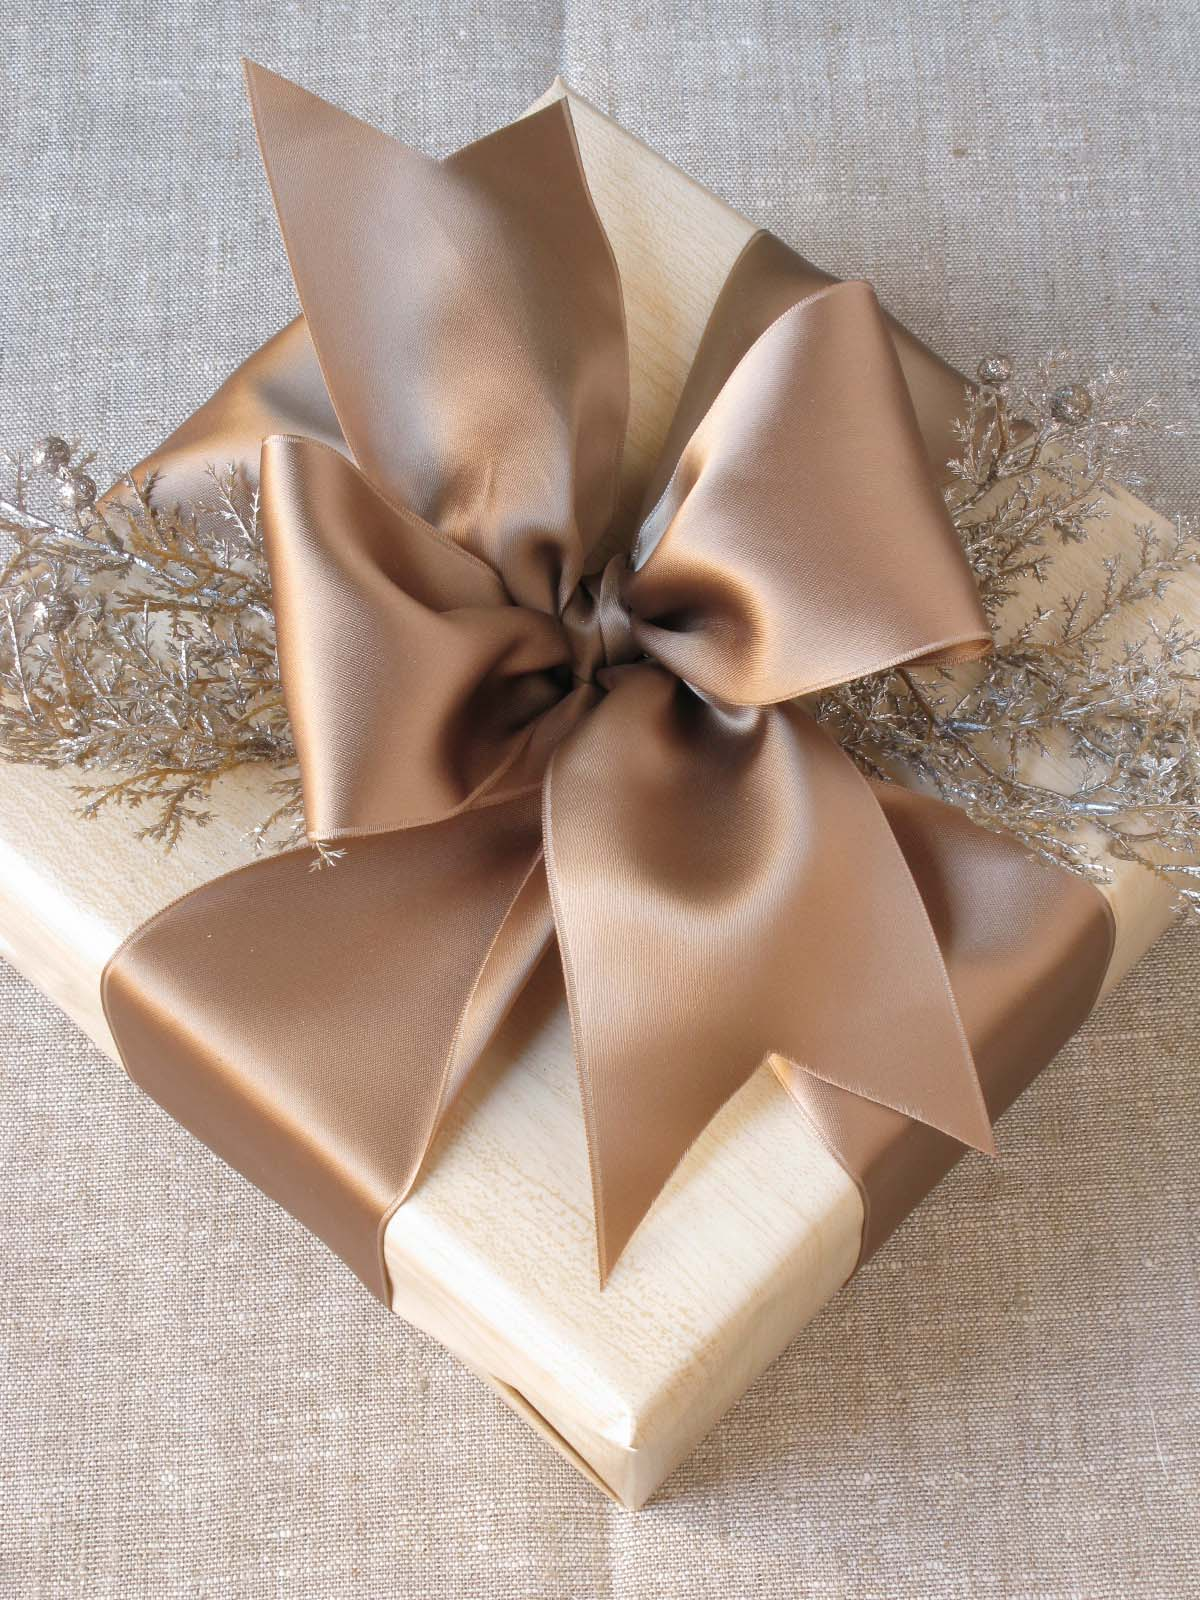 eddie-ross-wrapping-ribbon